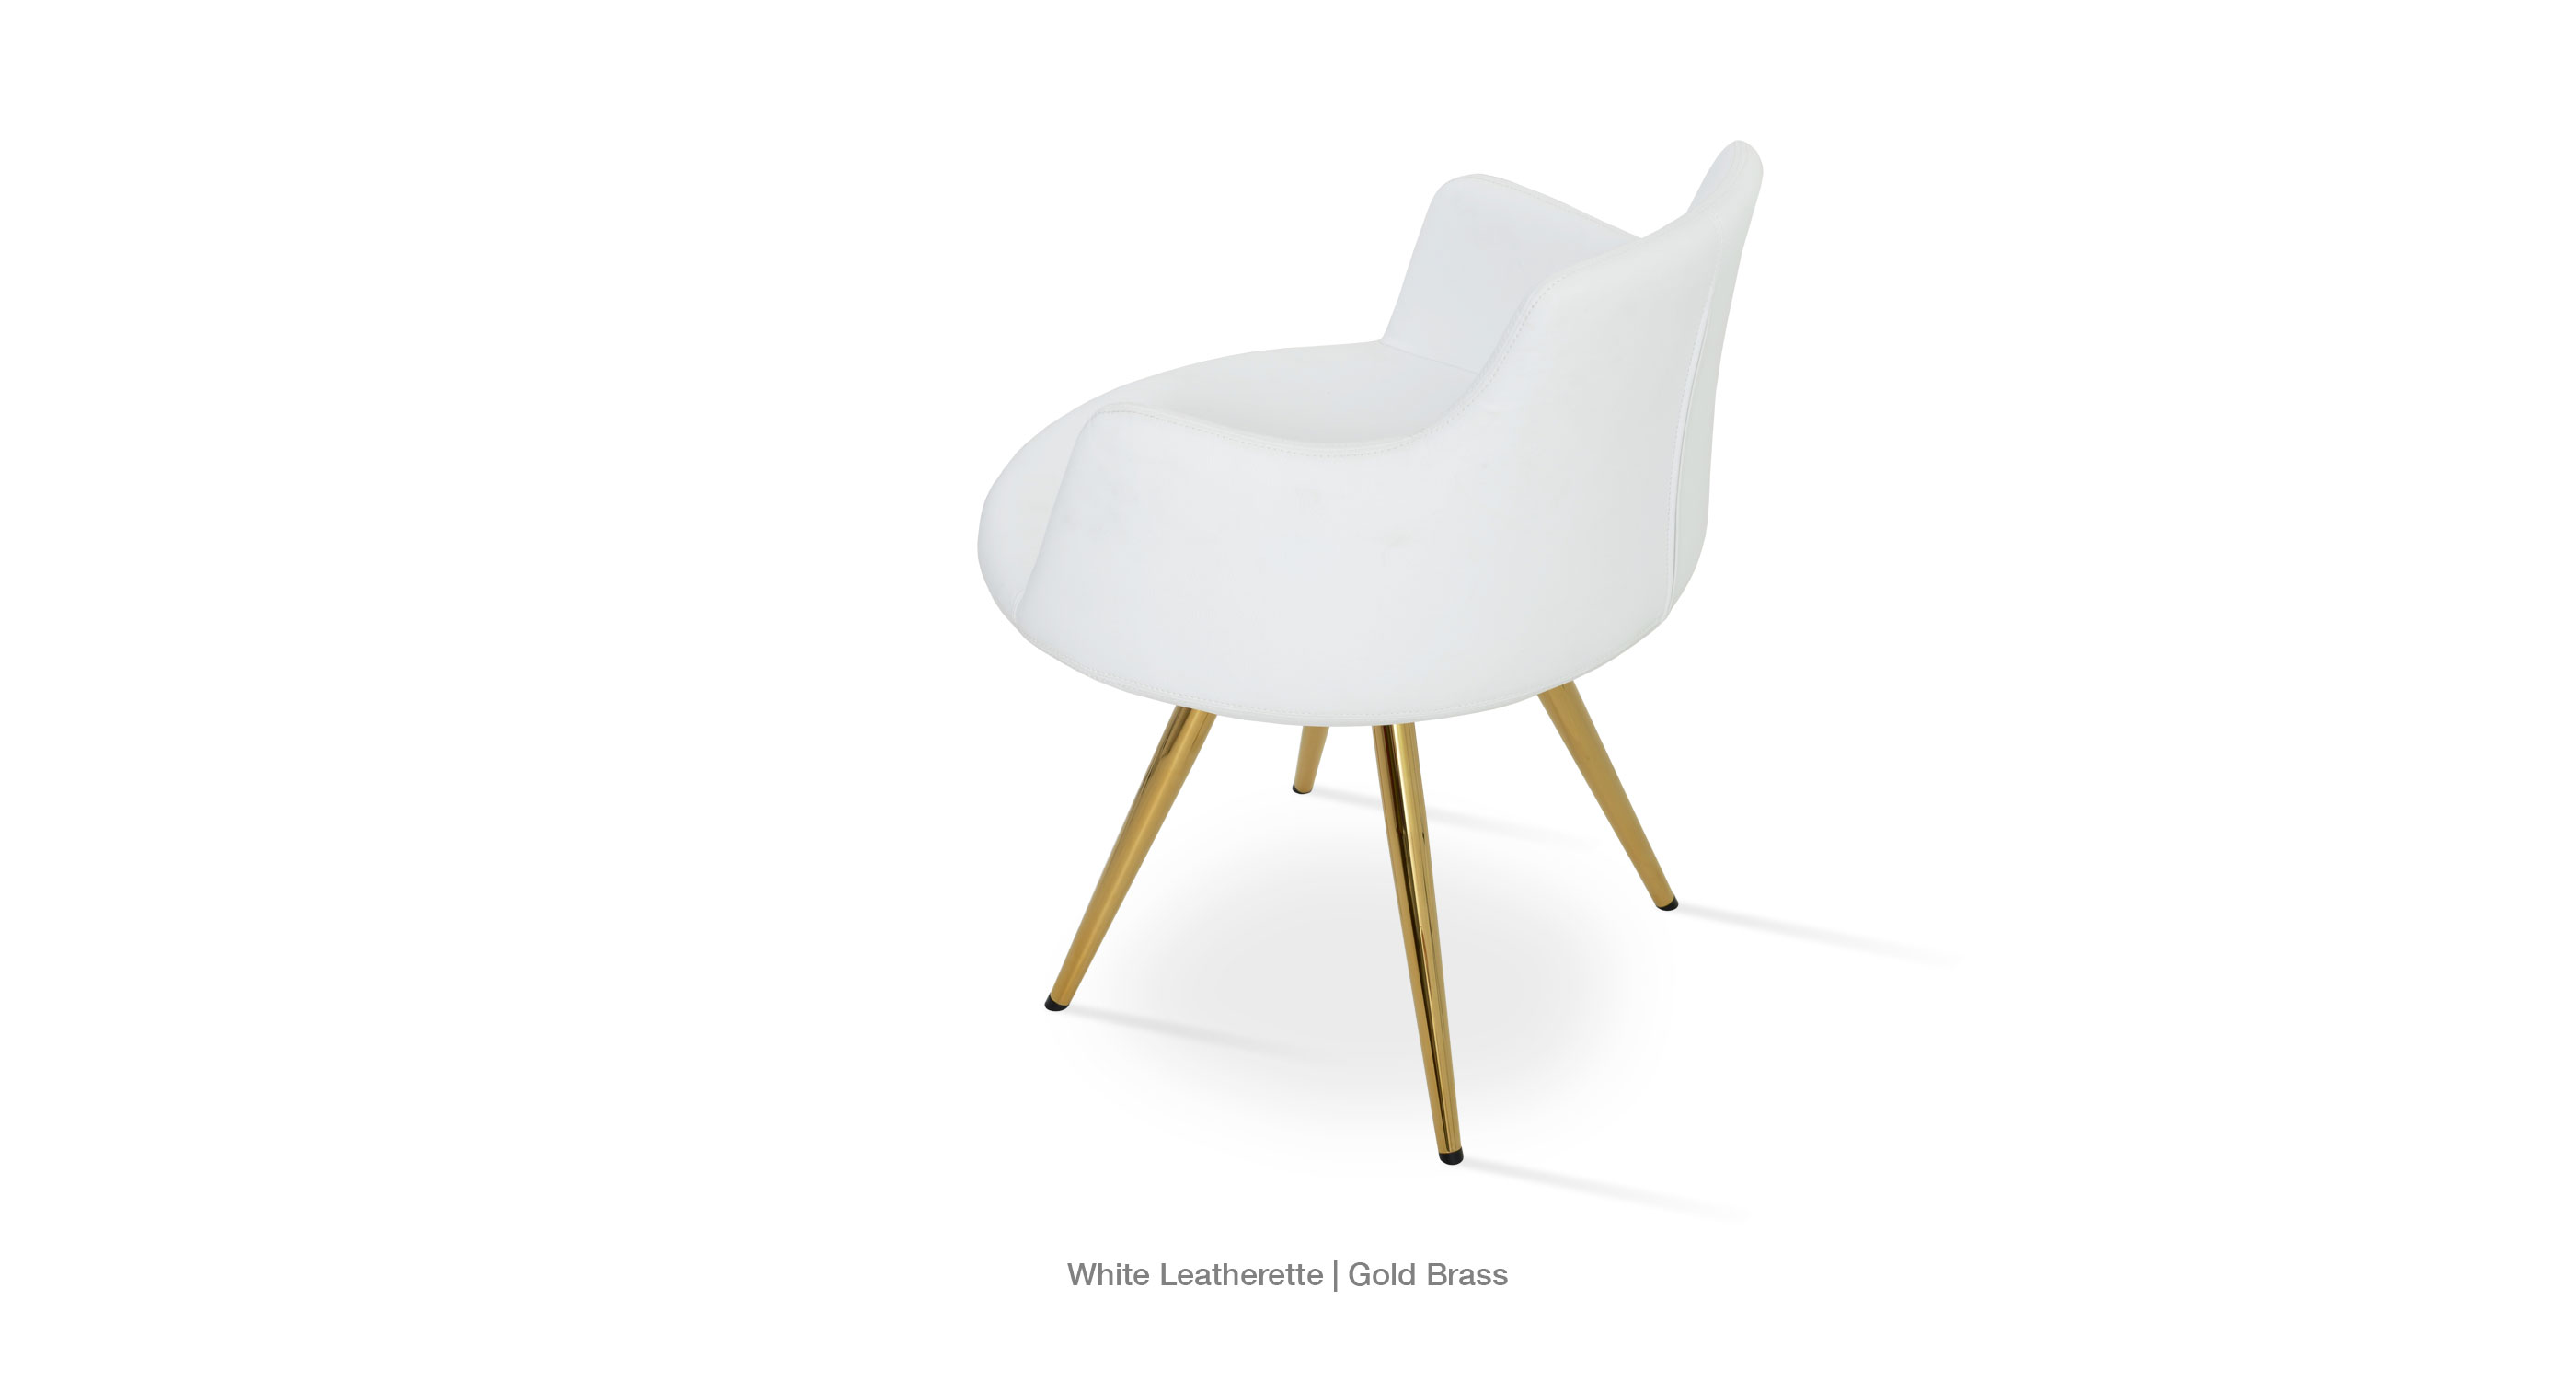 White Leatherette - Gold Brass